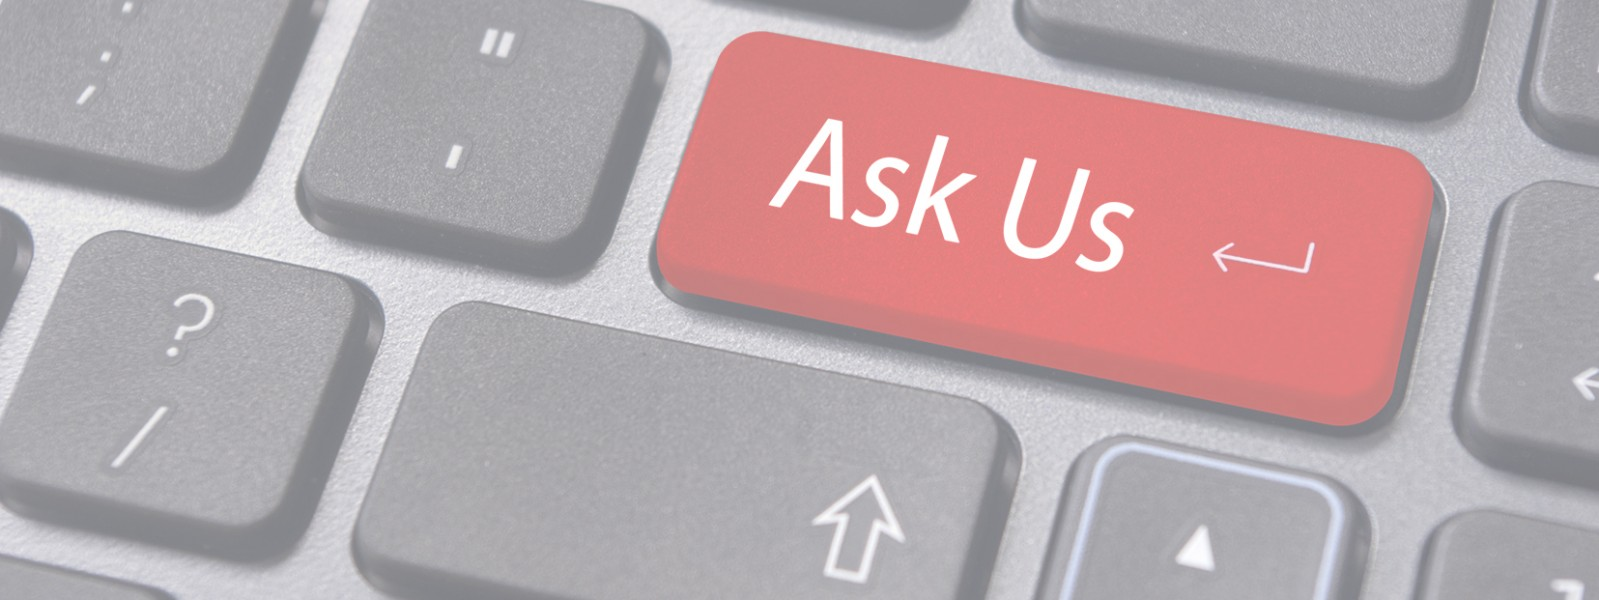 """image of keyboard that says """"ask us"""""""